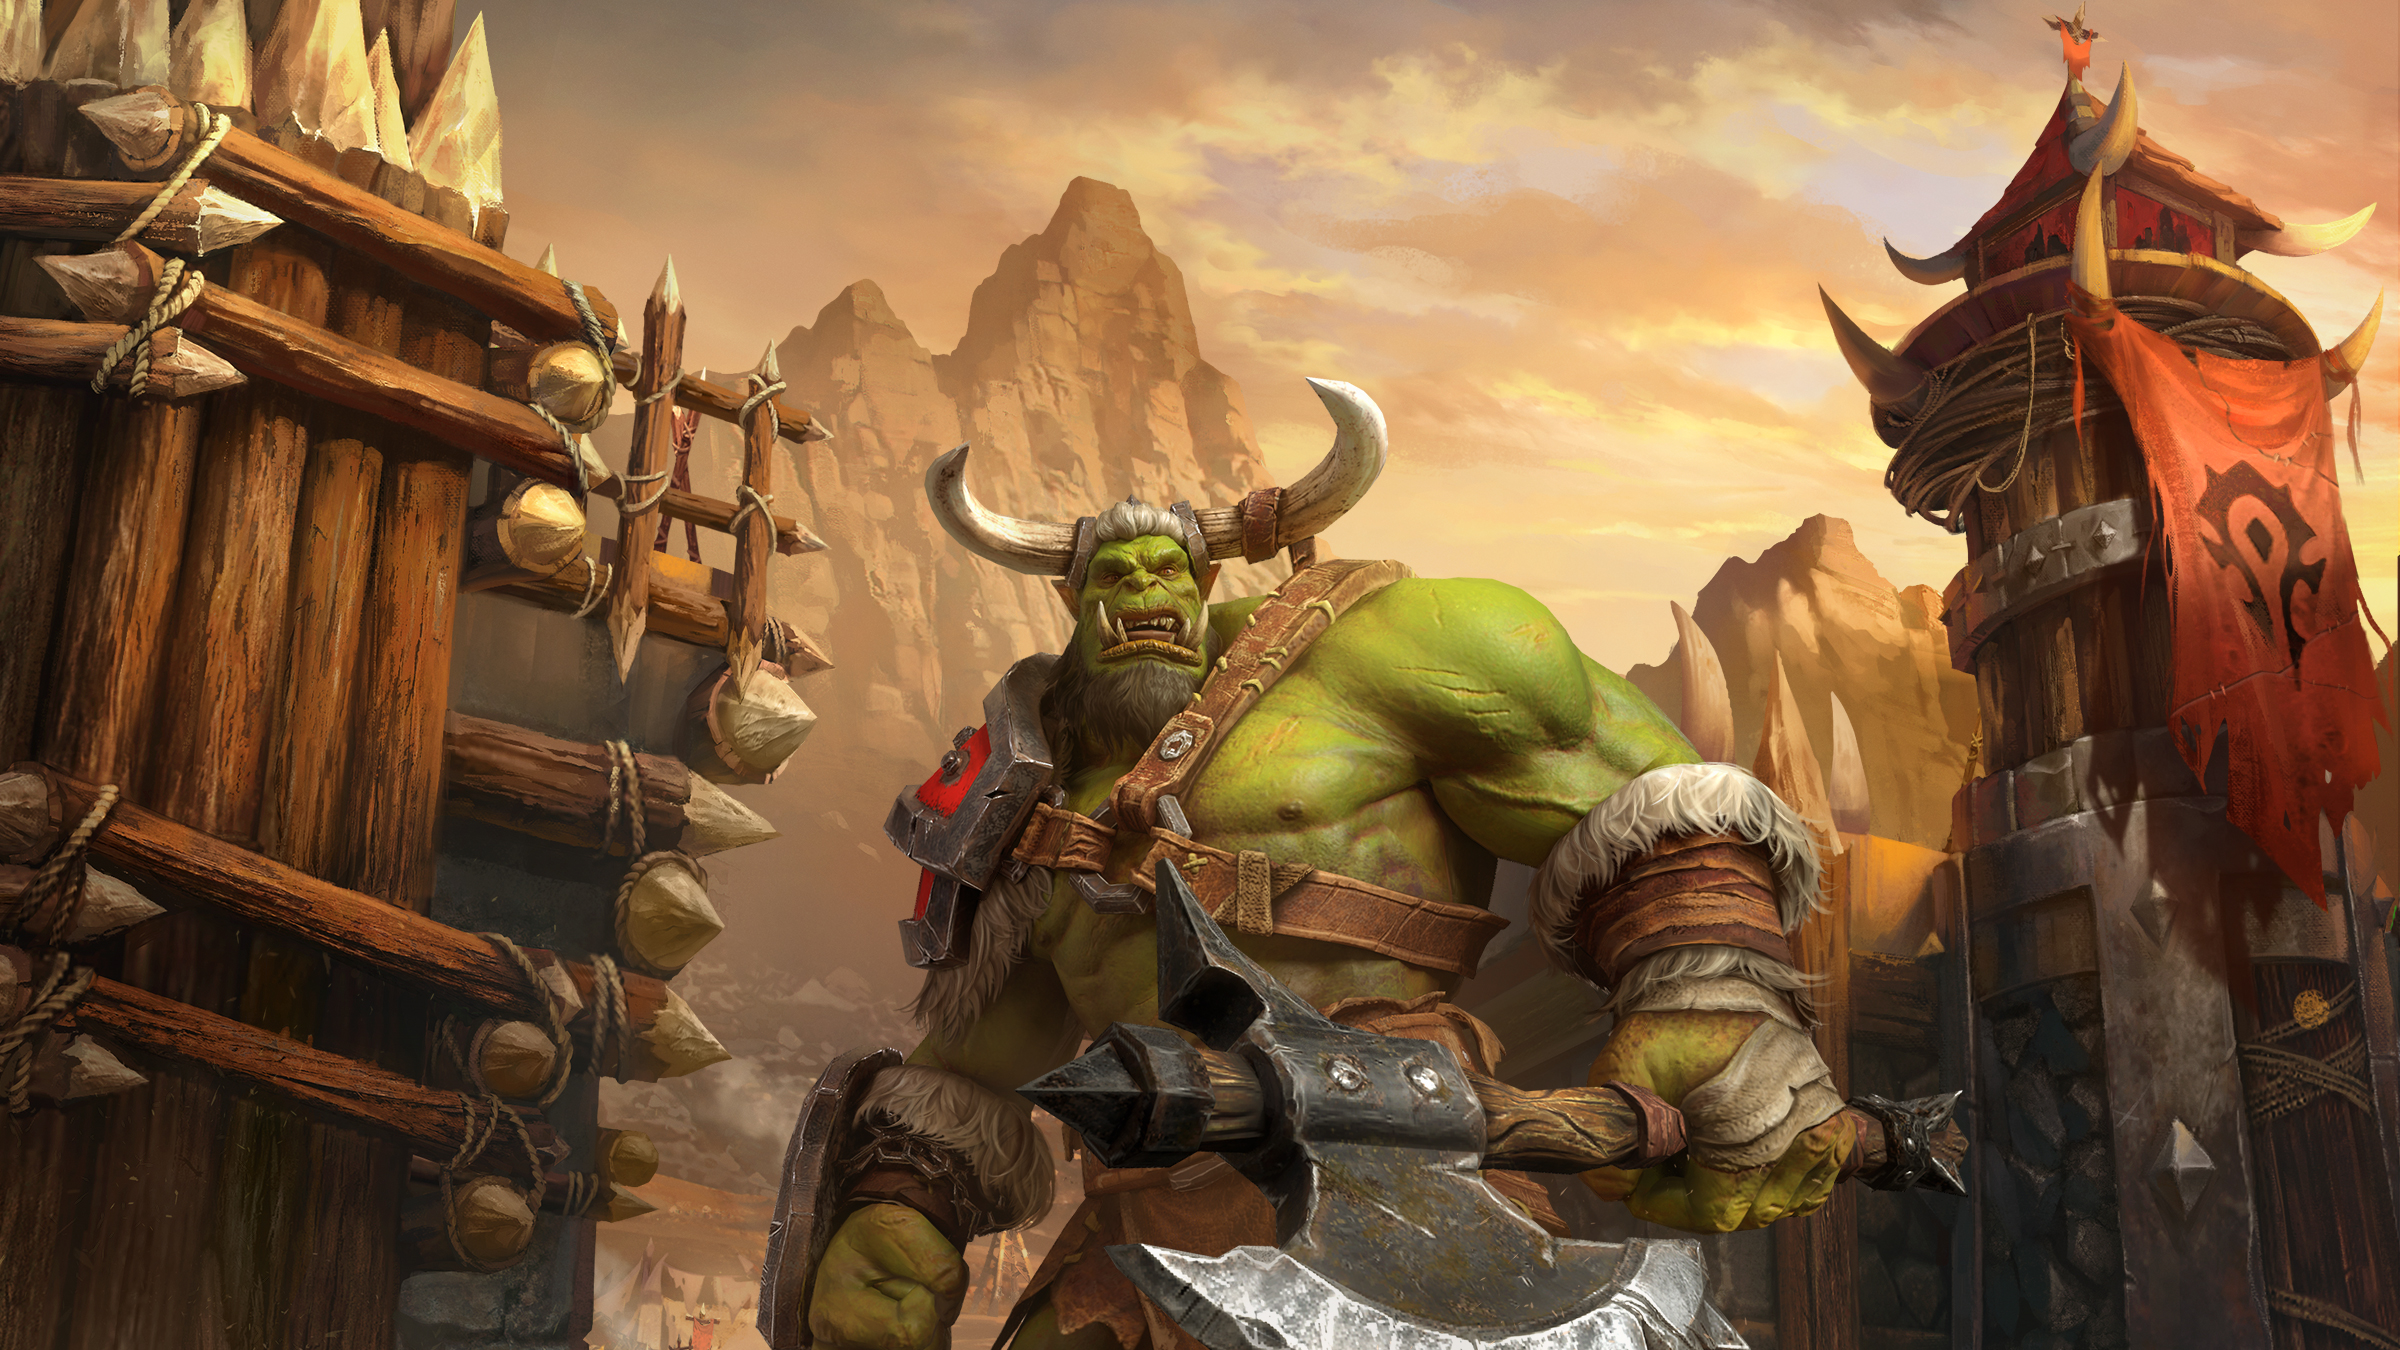 ¡Ya está disponible Warcraft III: Reforged!